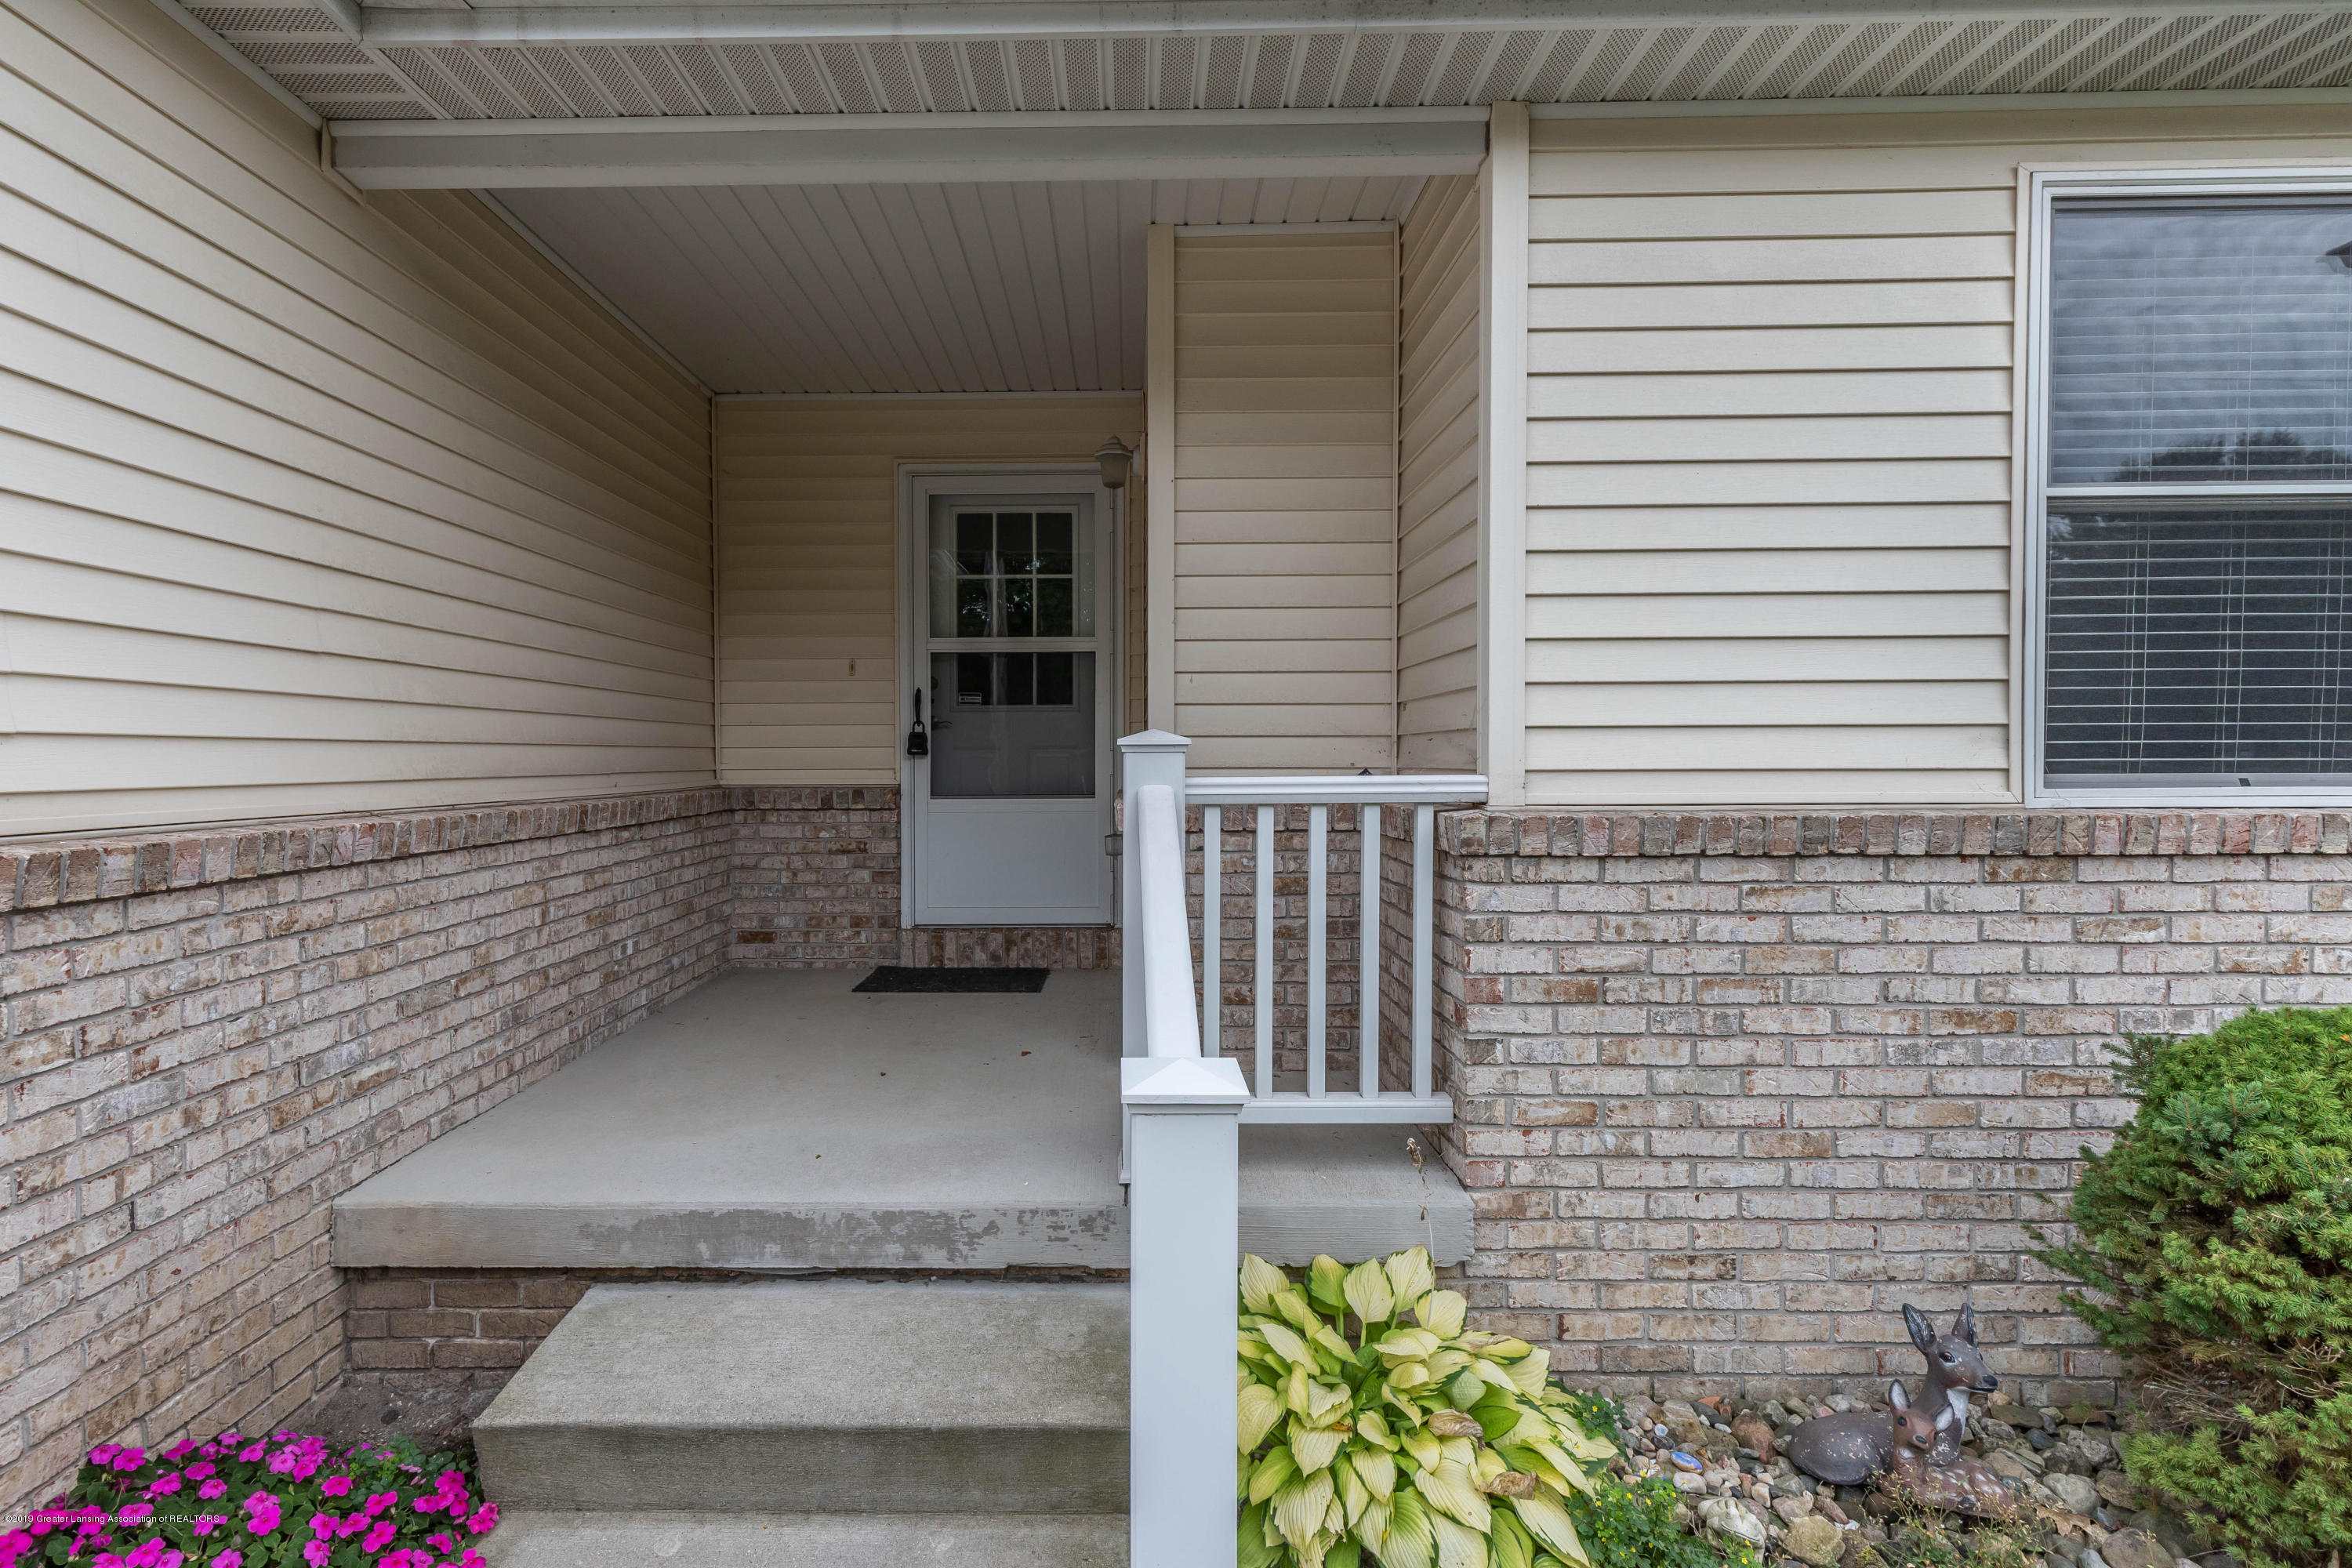 4165 Holt Rd - holtrdfront (1 of 1) - 4